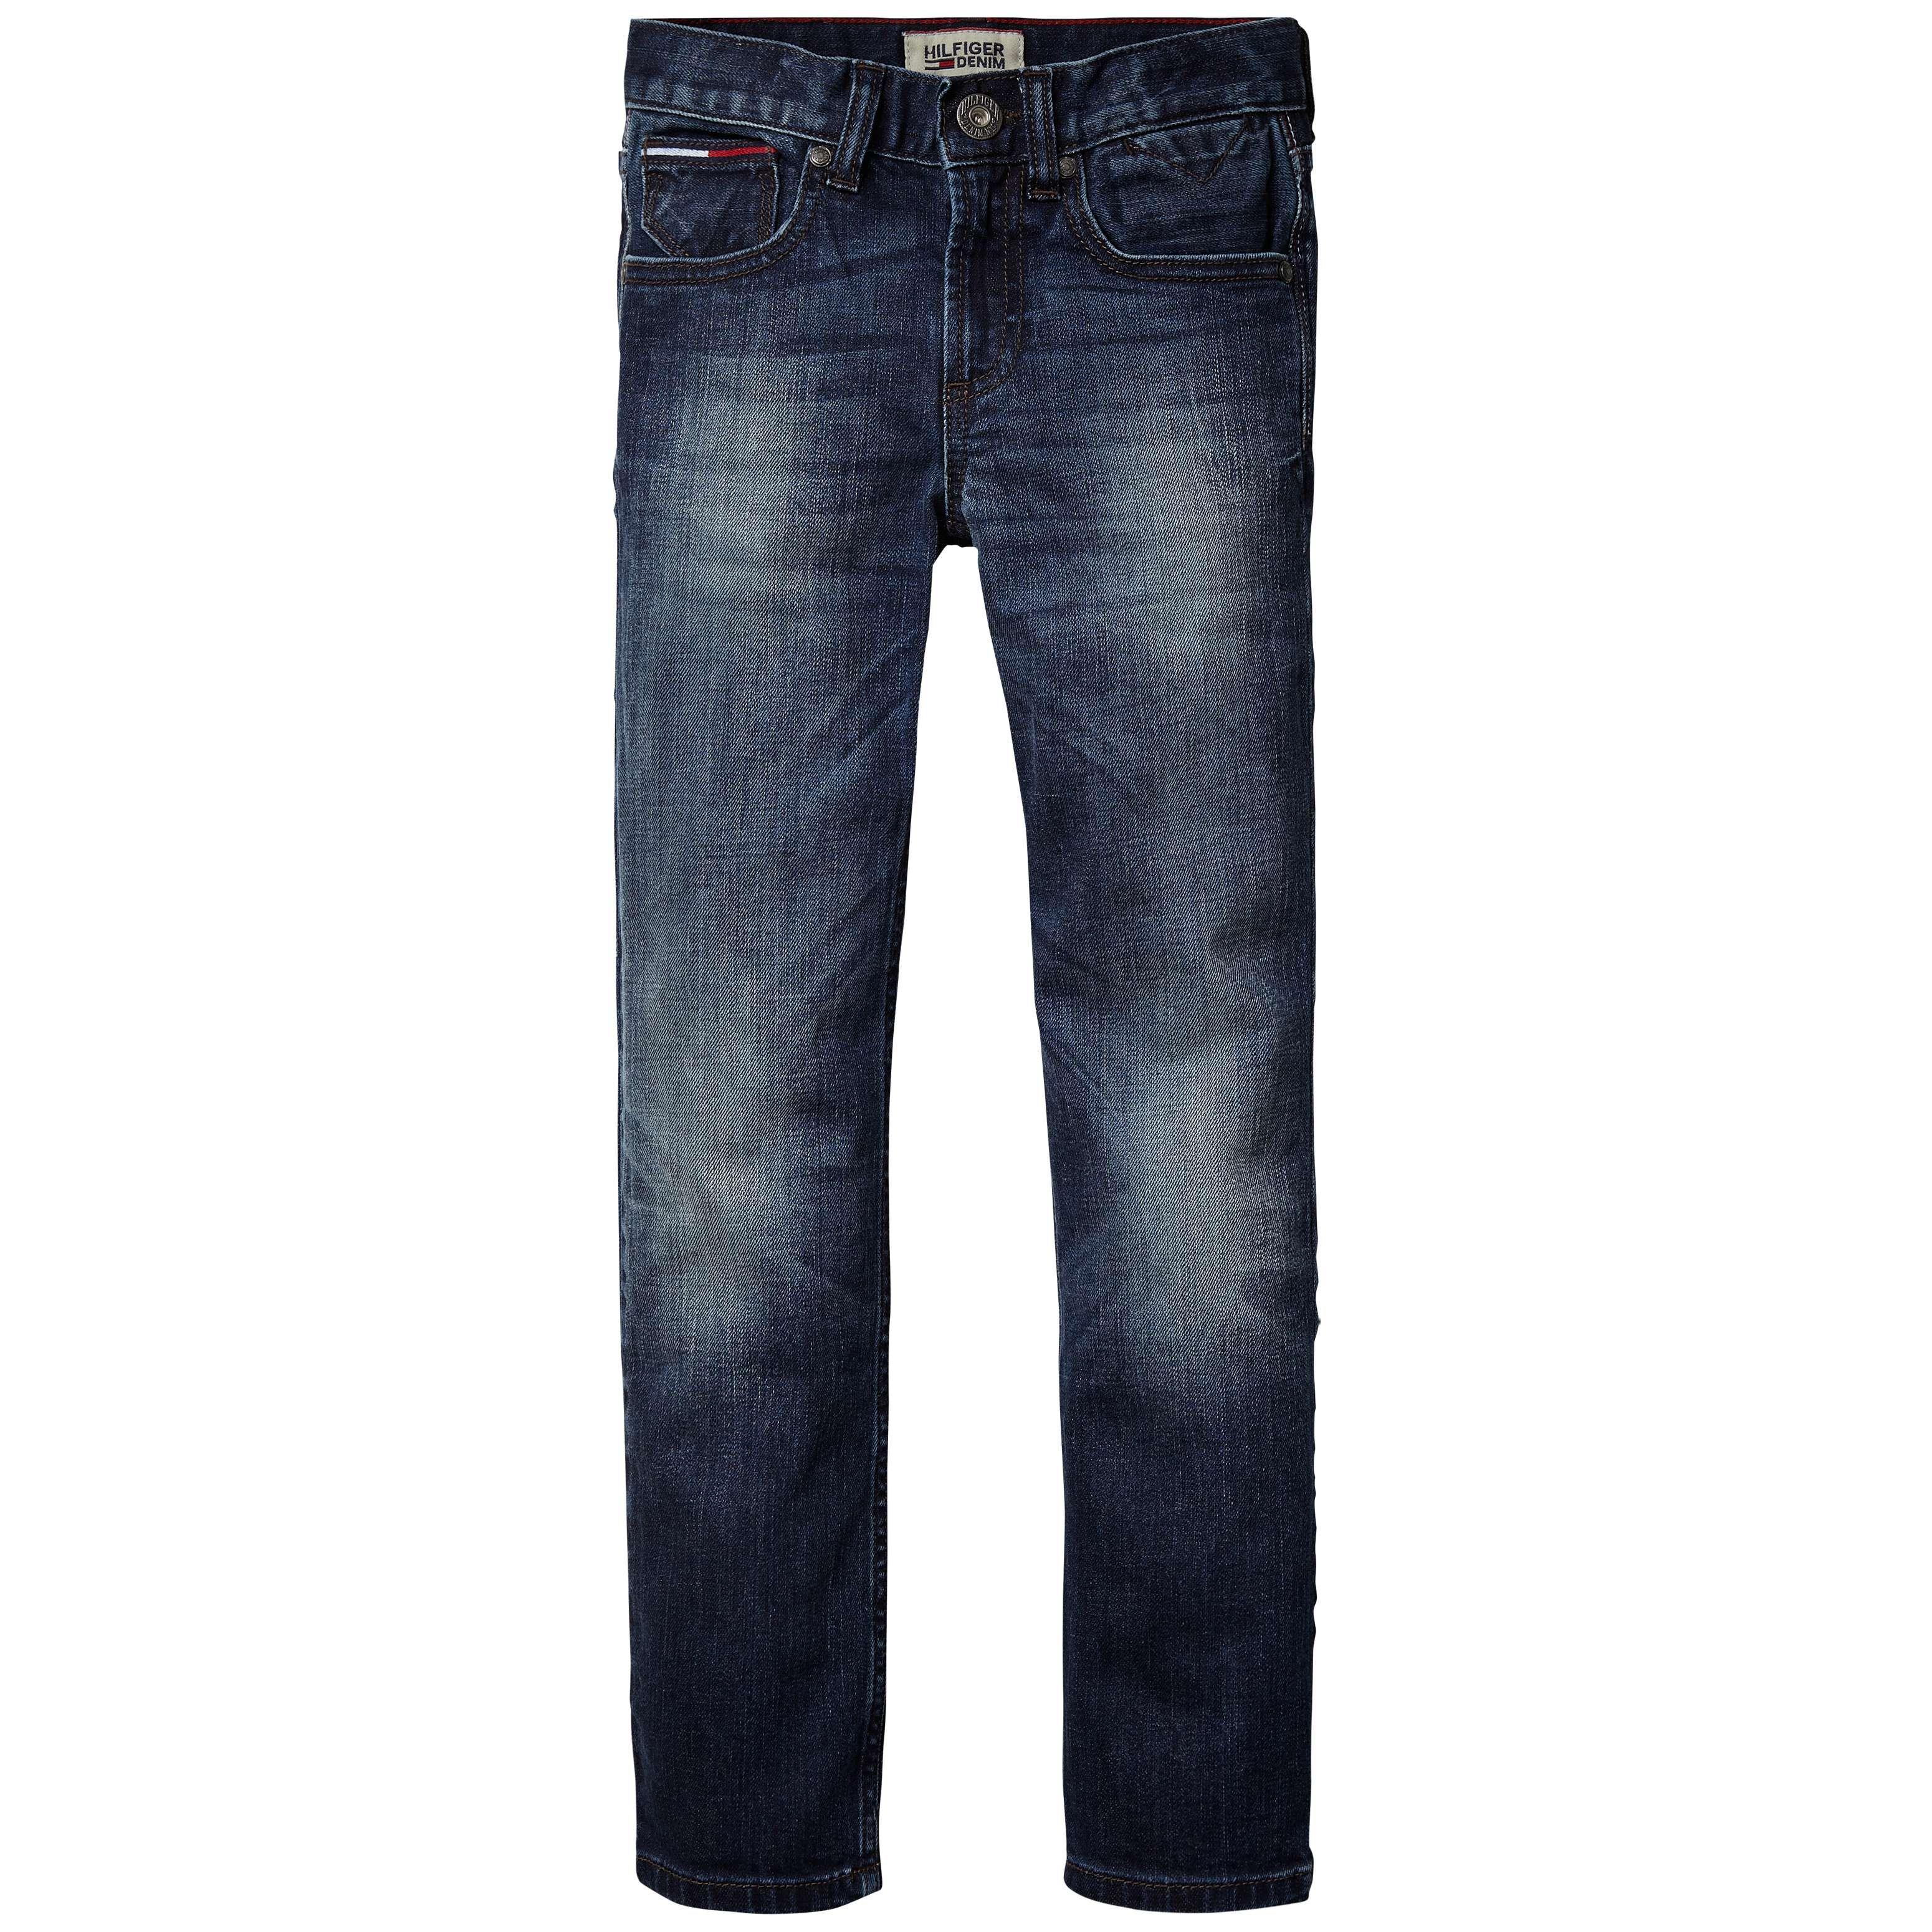 Boys clyde jeans